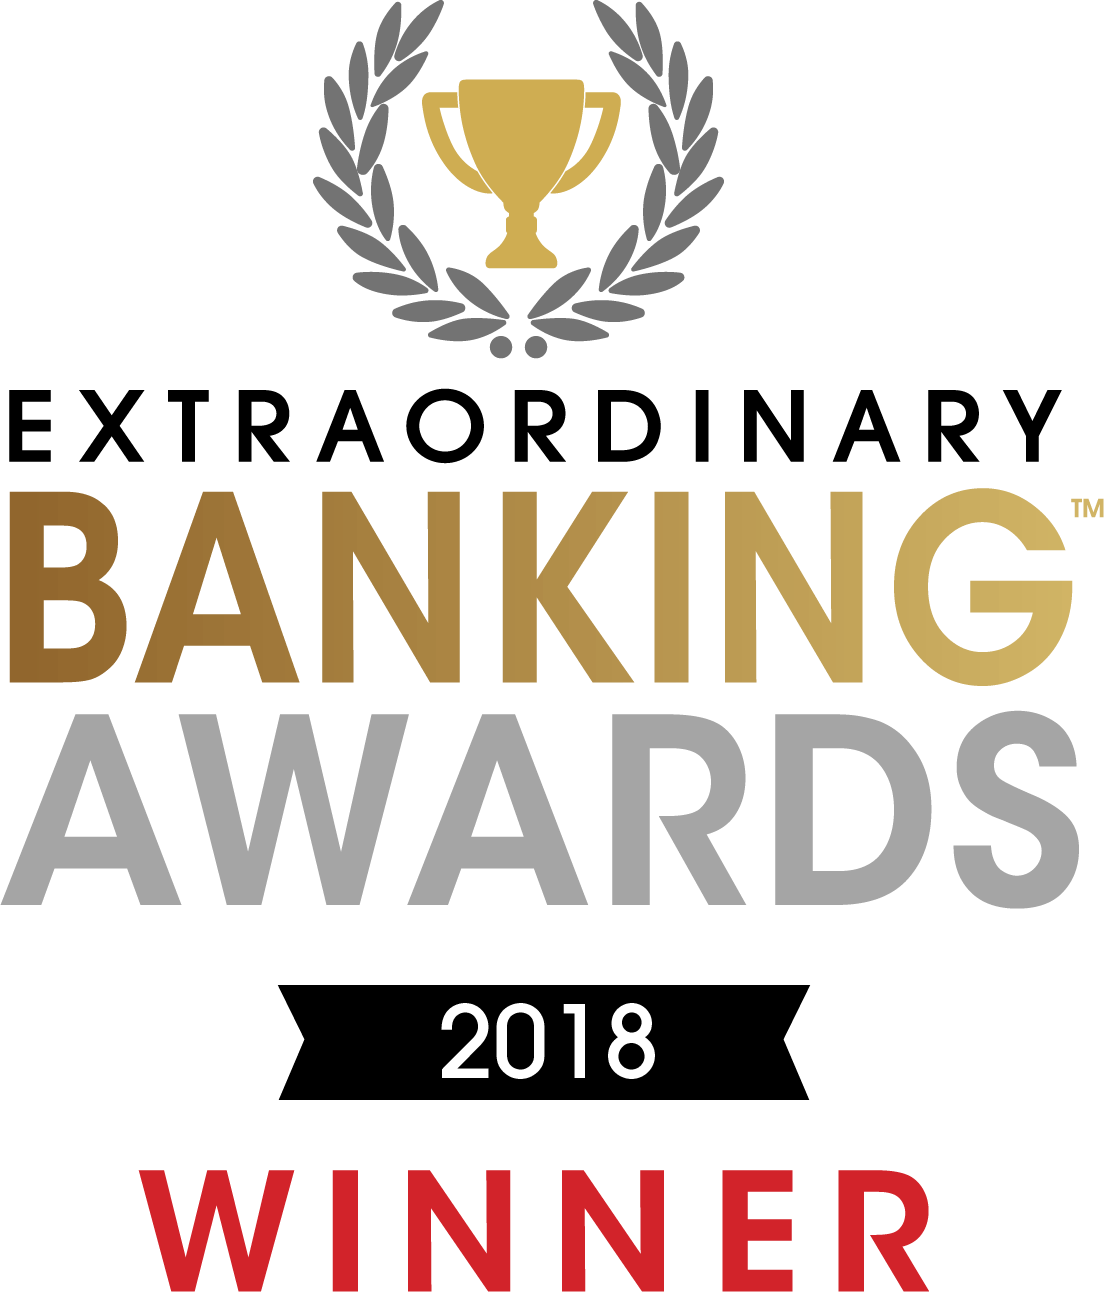 Extraordinary Banking Awards Winner 2018